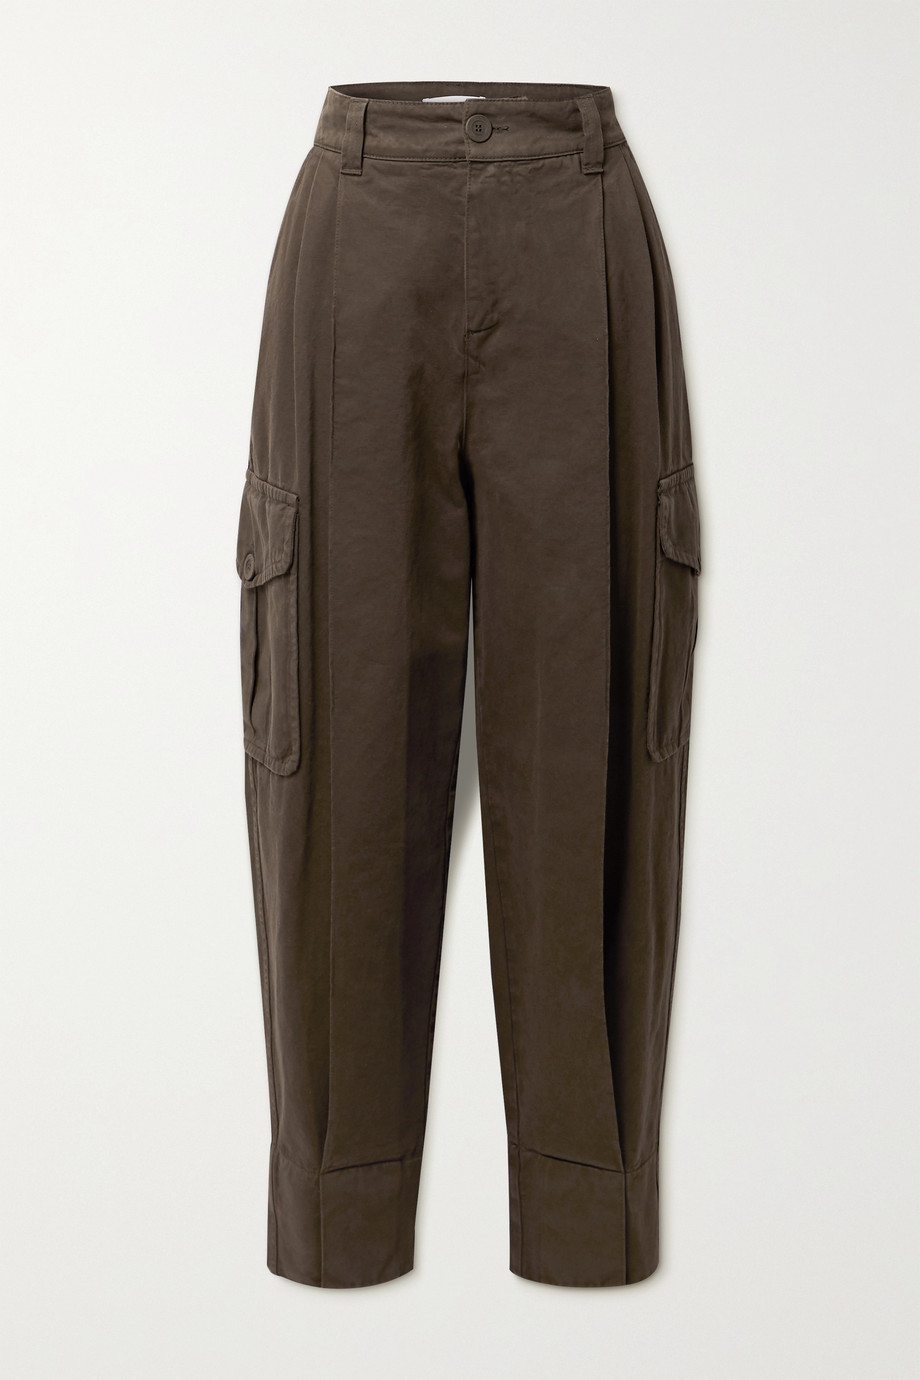 SEE BY CHLOÉ Pleated high-rise tapered jeans